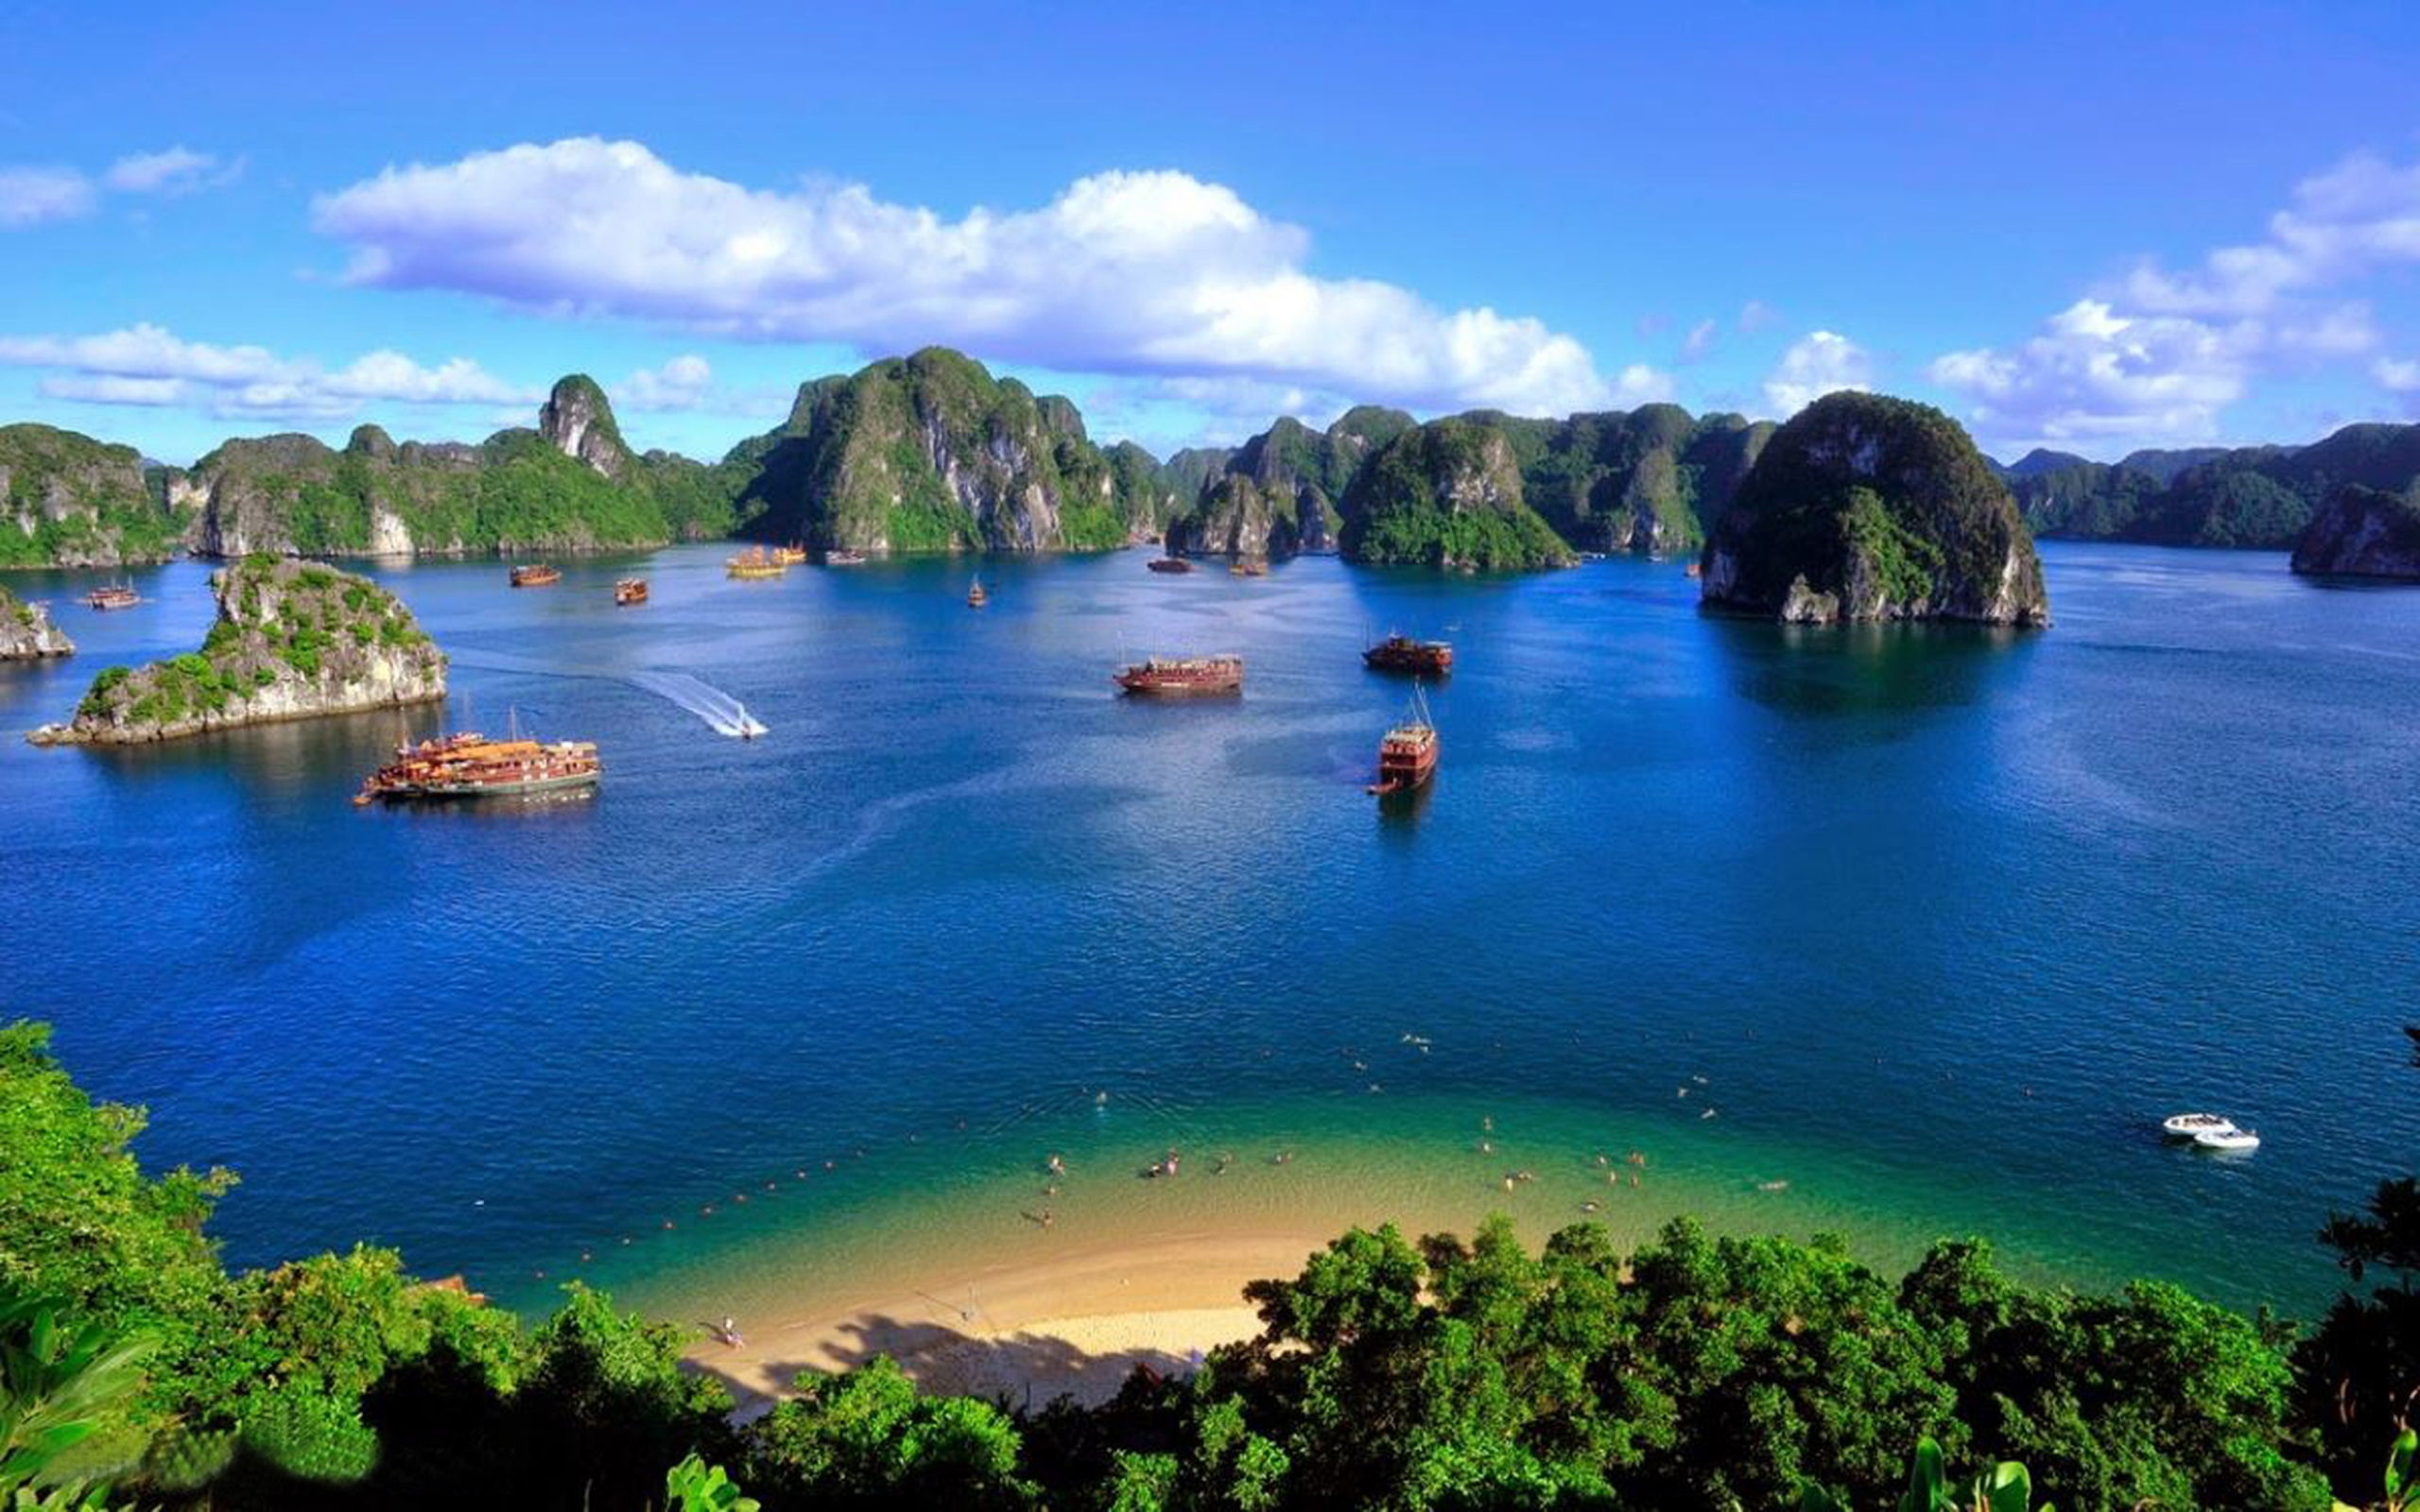 Iphone 5 Wallpaper Hd Star Wars Vietnam Halong Bay 0543681 Wallpapers13 Com